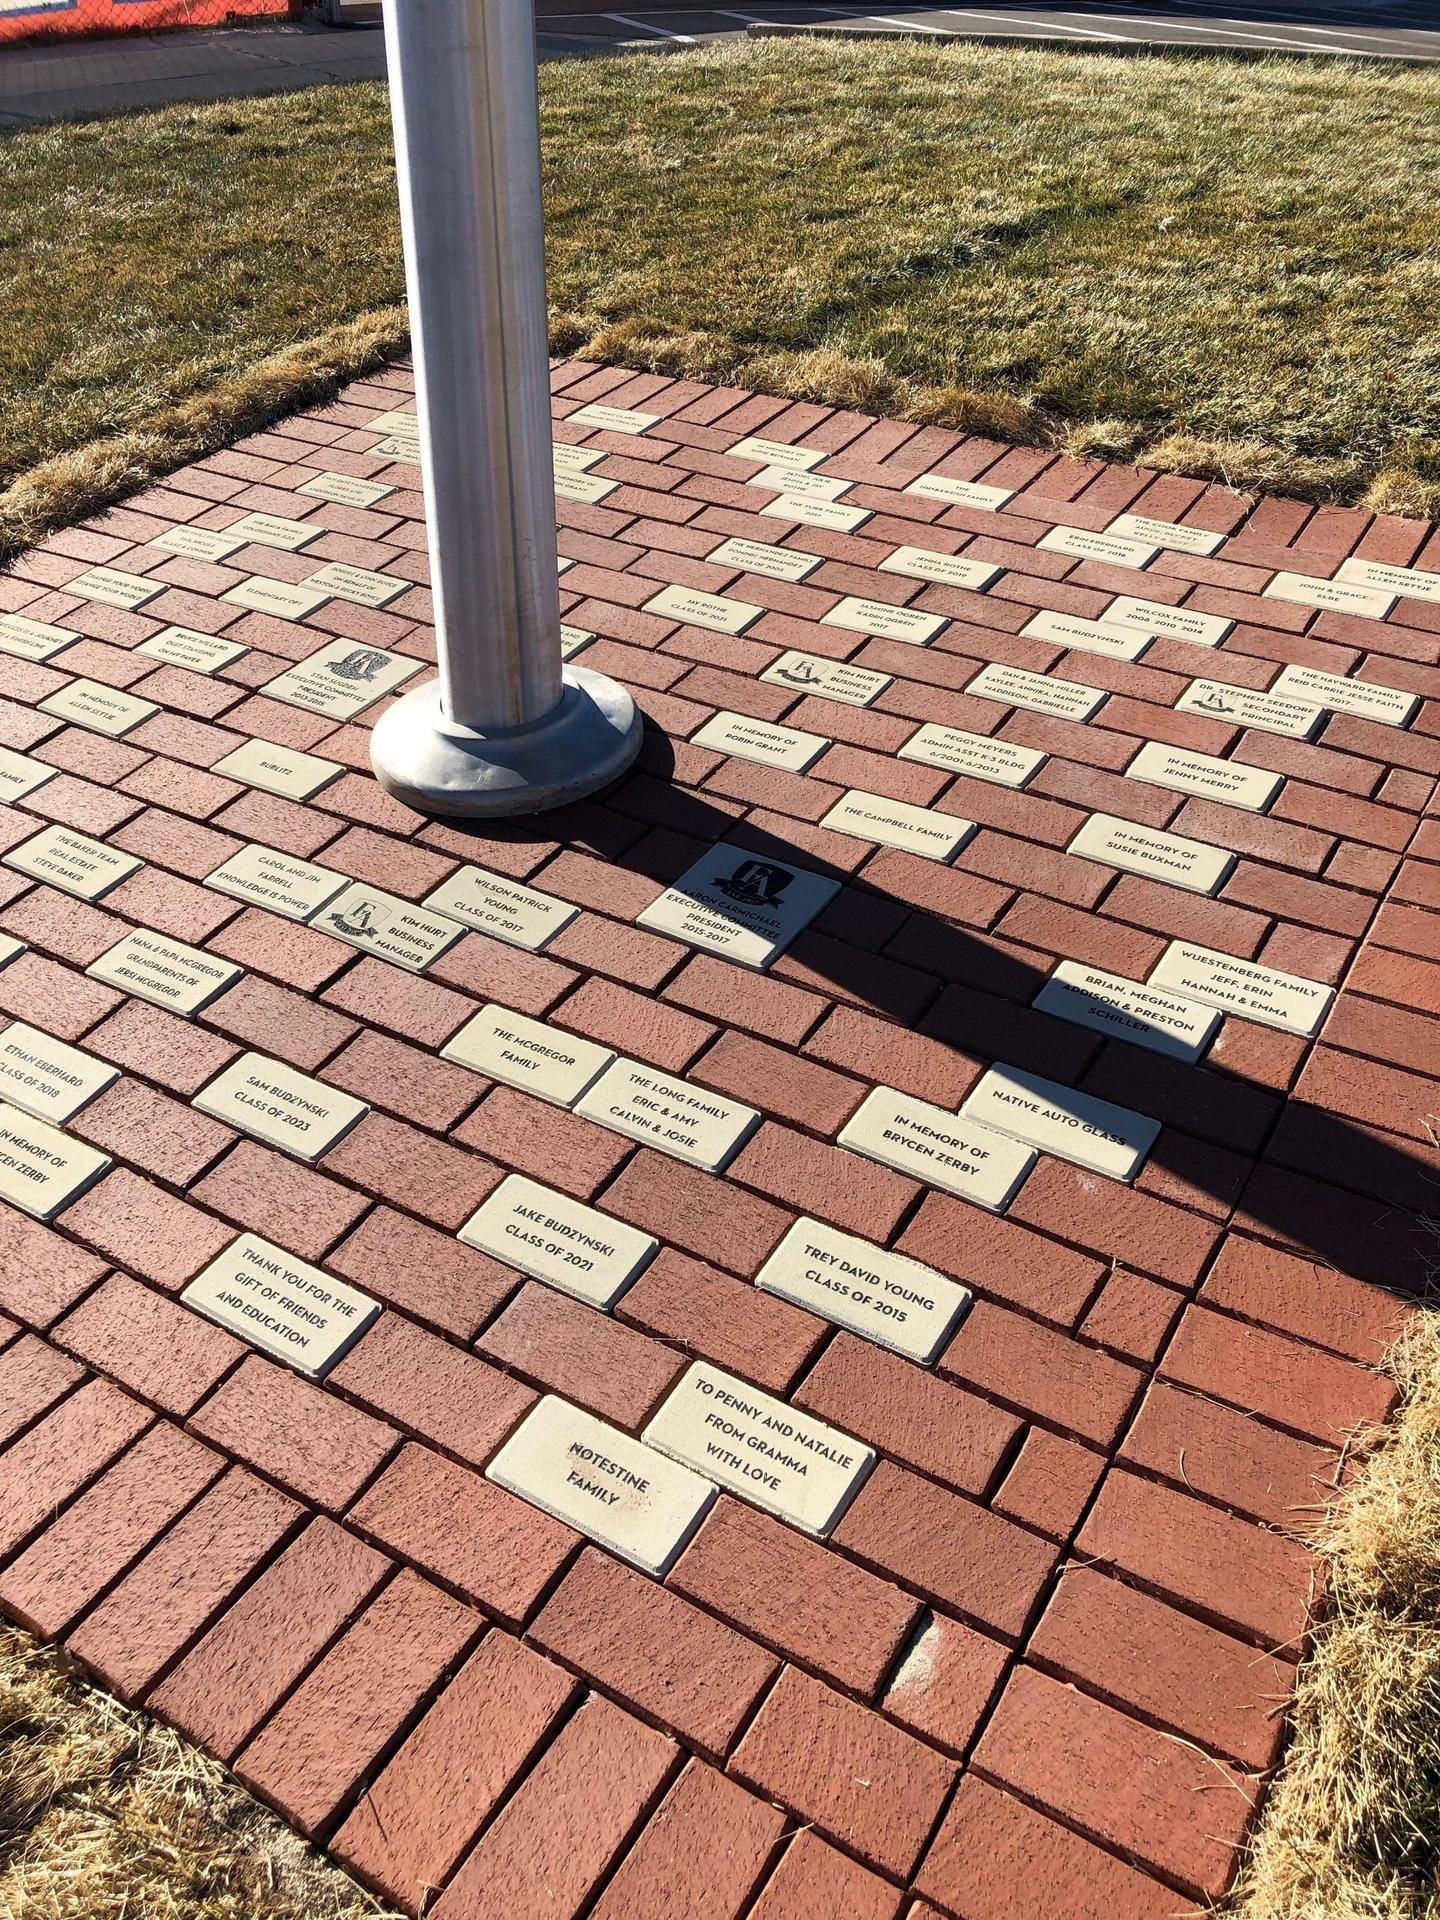 Brick pavers under flag pole.